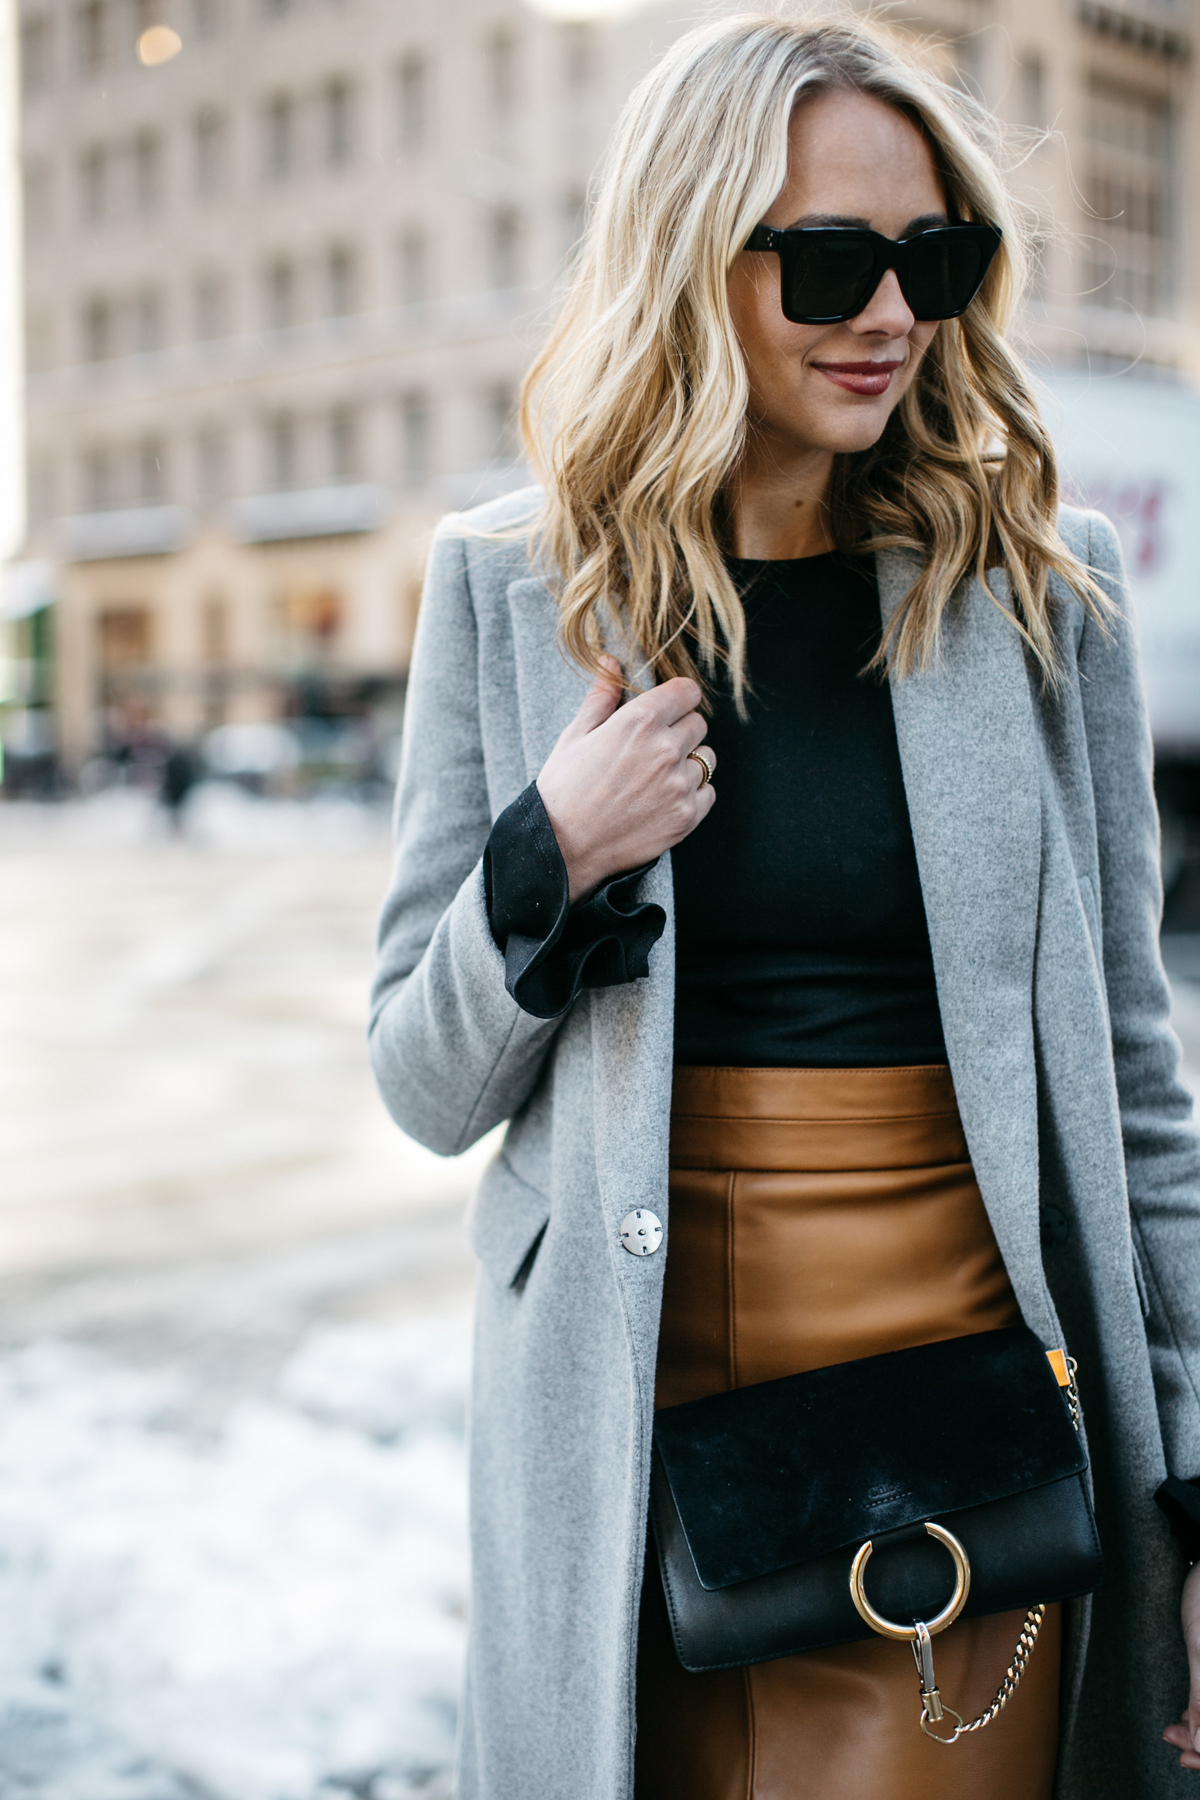 NYFW Street Style, Grey Coat, Tan Skirt, Chloe Faye Handbag, Black Booties